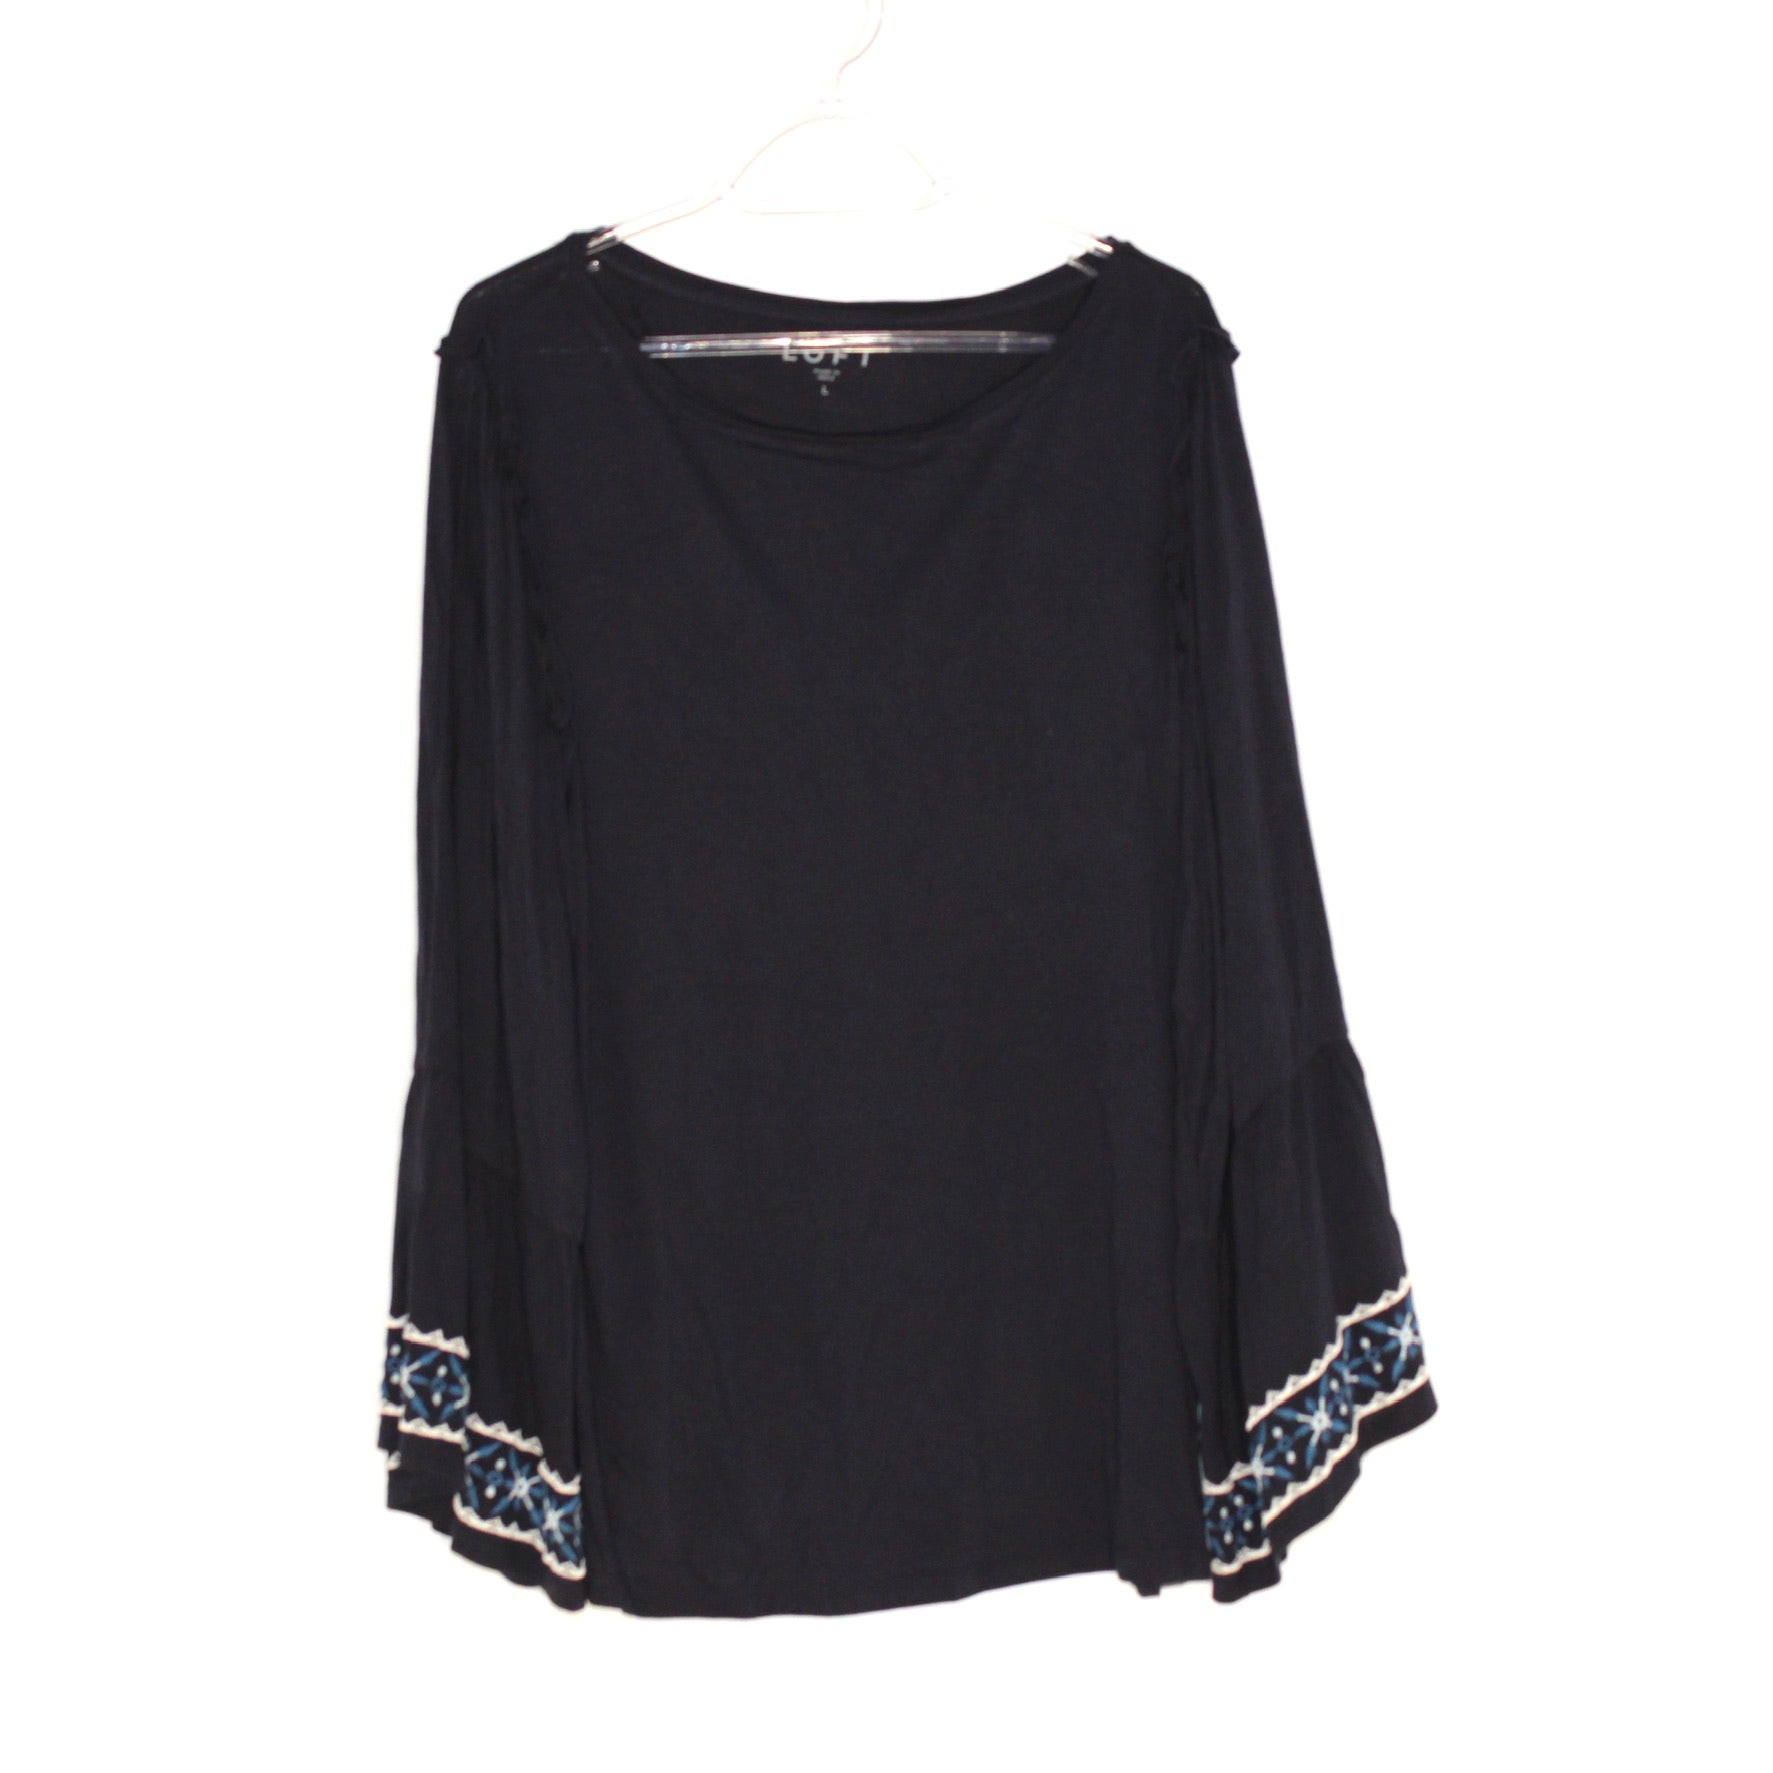 Primary Photo - BRAND: ANN TAYLOR LOFT <BR>STYLE: TOP LONG SLEEVE <BR>COLOR: NAVY <BR>SIZE: L <BR>SKU: 262-26275-44804